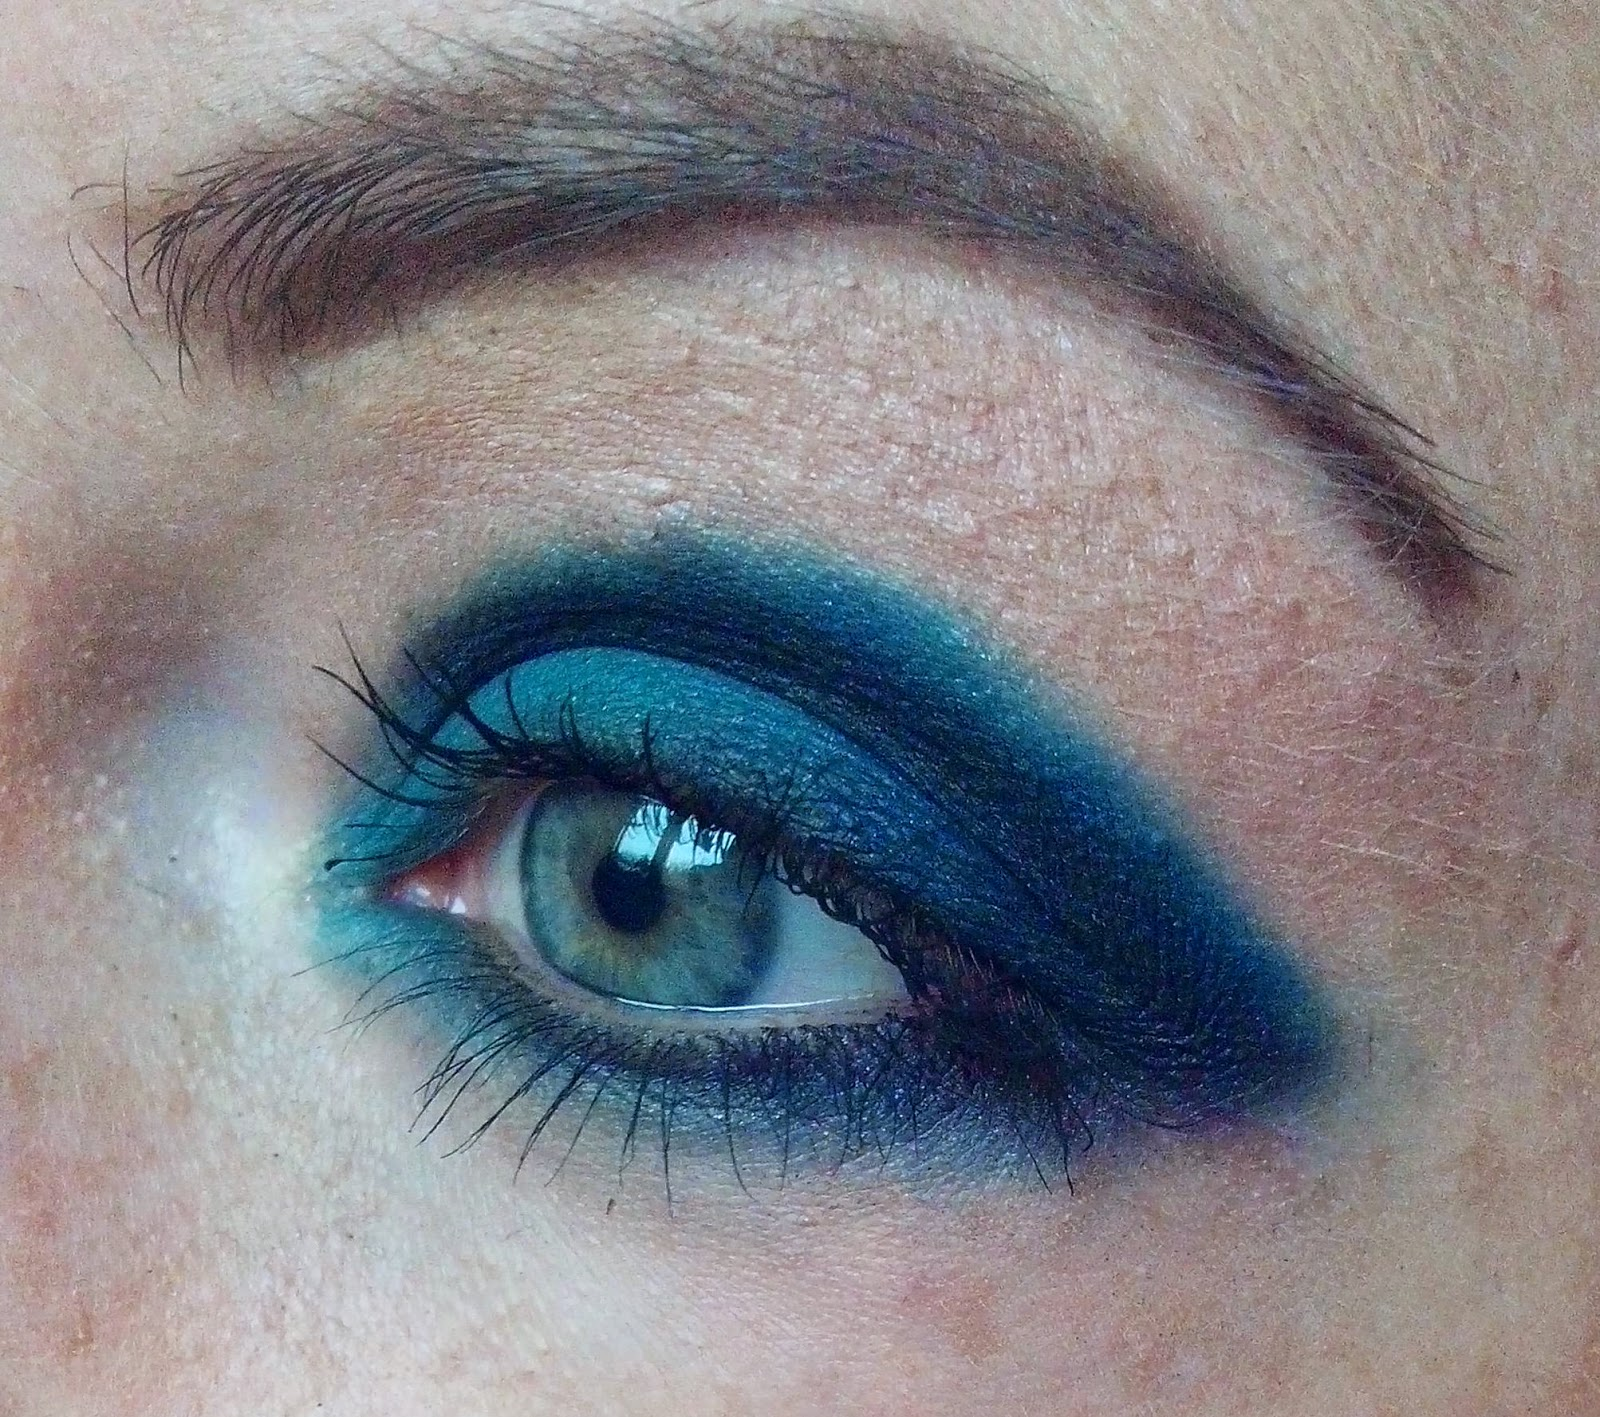 sleek-i-divine-mineral-based-eye-shadow-ultra-matts-makeup-look